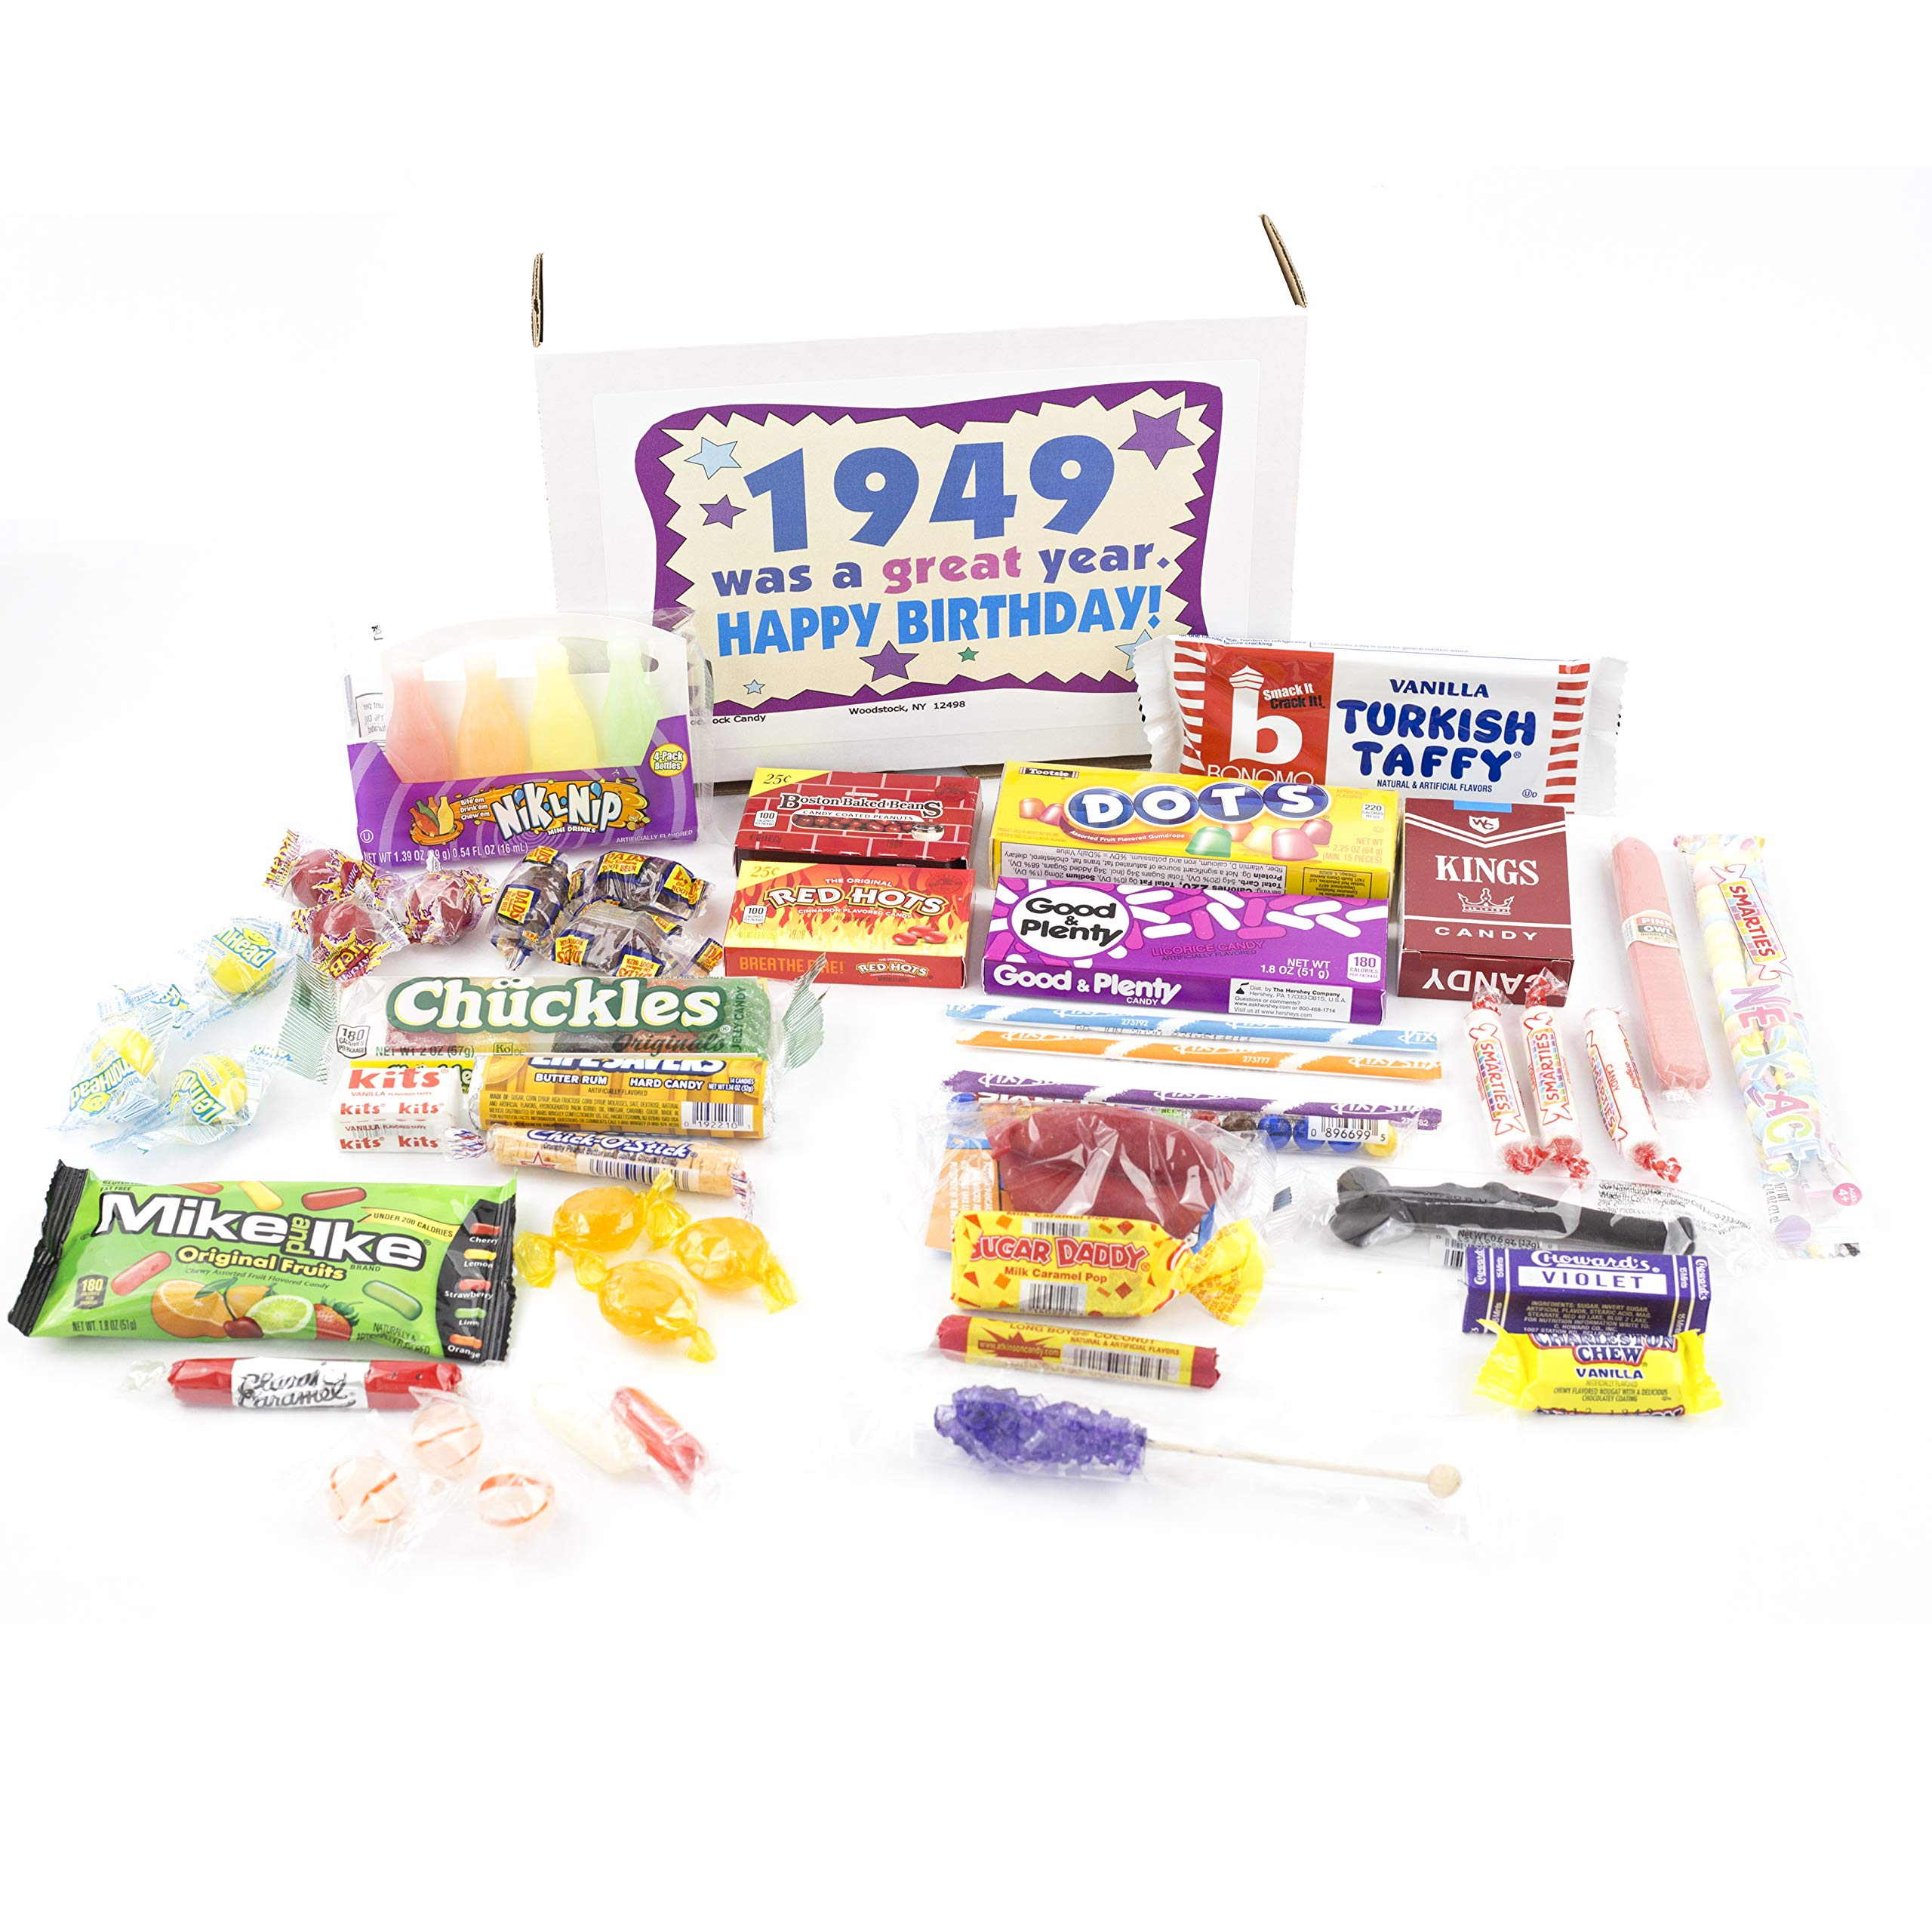 Woodstock Candy ~ 70th Birthday Gift Box of Nostalgic Retro Candy Mix from Childhood for 70 Year Old Man or Woman Born 1949 - Great Idea for Mom or Dad - Jr